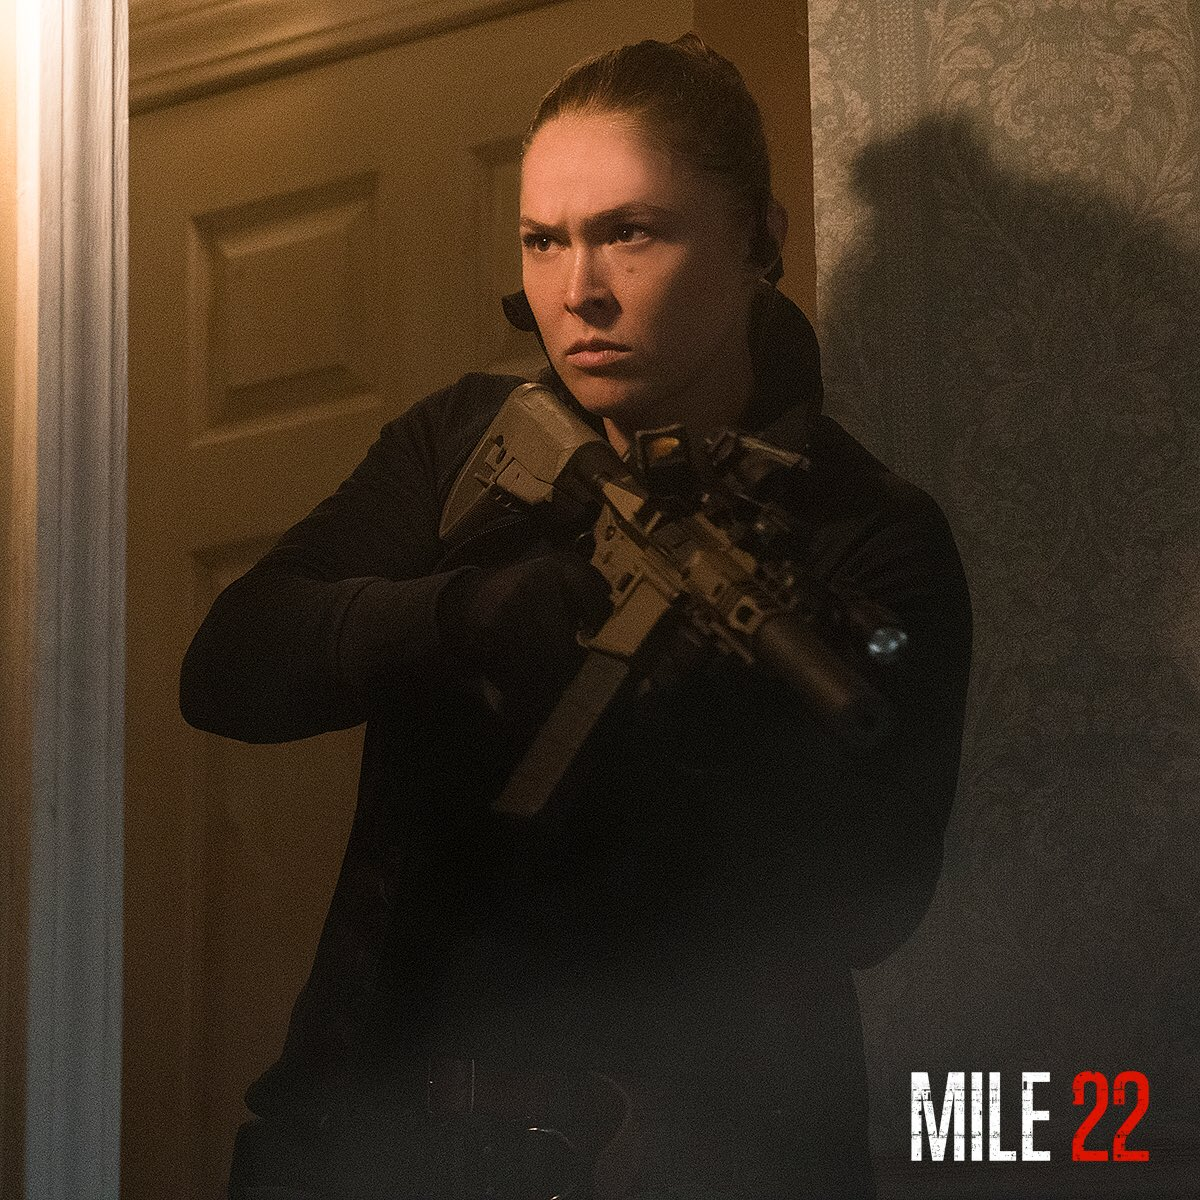 Locked and loaded. #Mile22 – in theaters August 17. https://t.co/29twYqqPl6